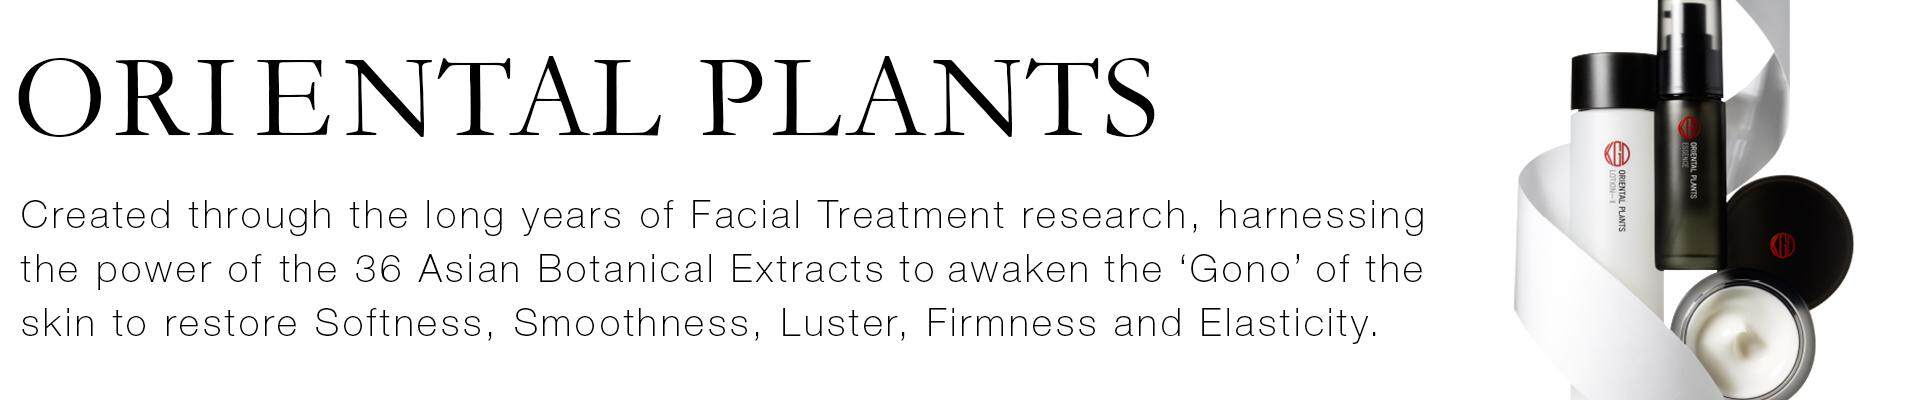 ORIENTAL PLANTS. Created through the long years of Facial Treatment research, harnessing the power of the 36 Asian Botanical Extracts to awaken the 'Gono' of the skin to restore Softness, Smoothness, Luster, Firmness and Elasticity.